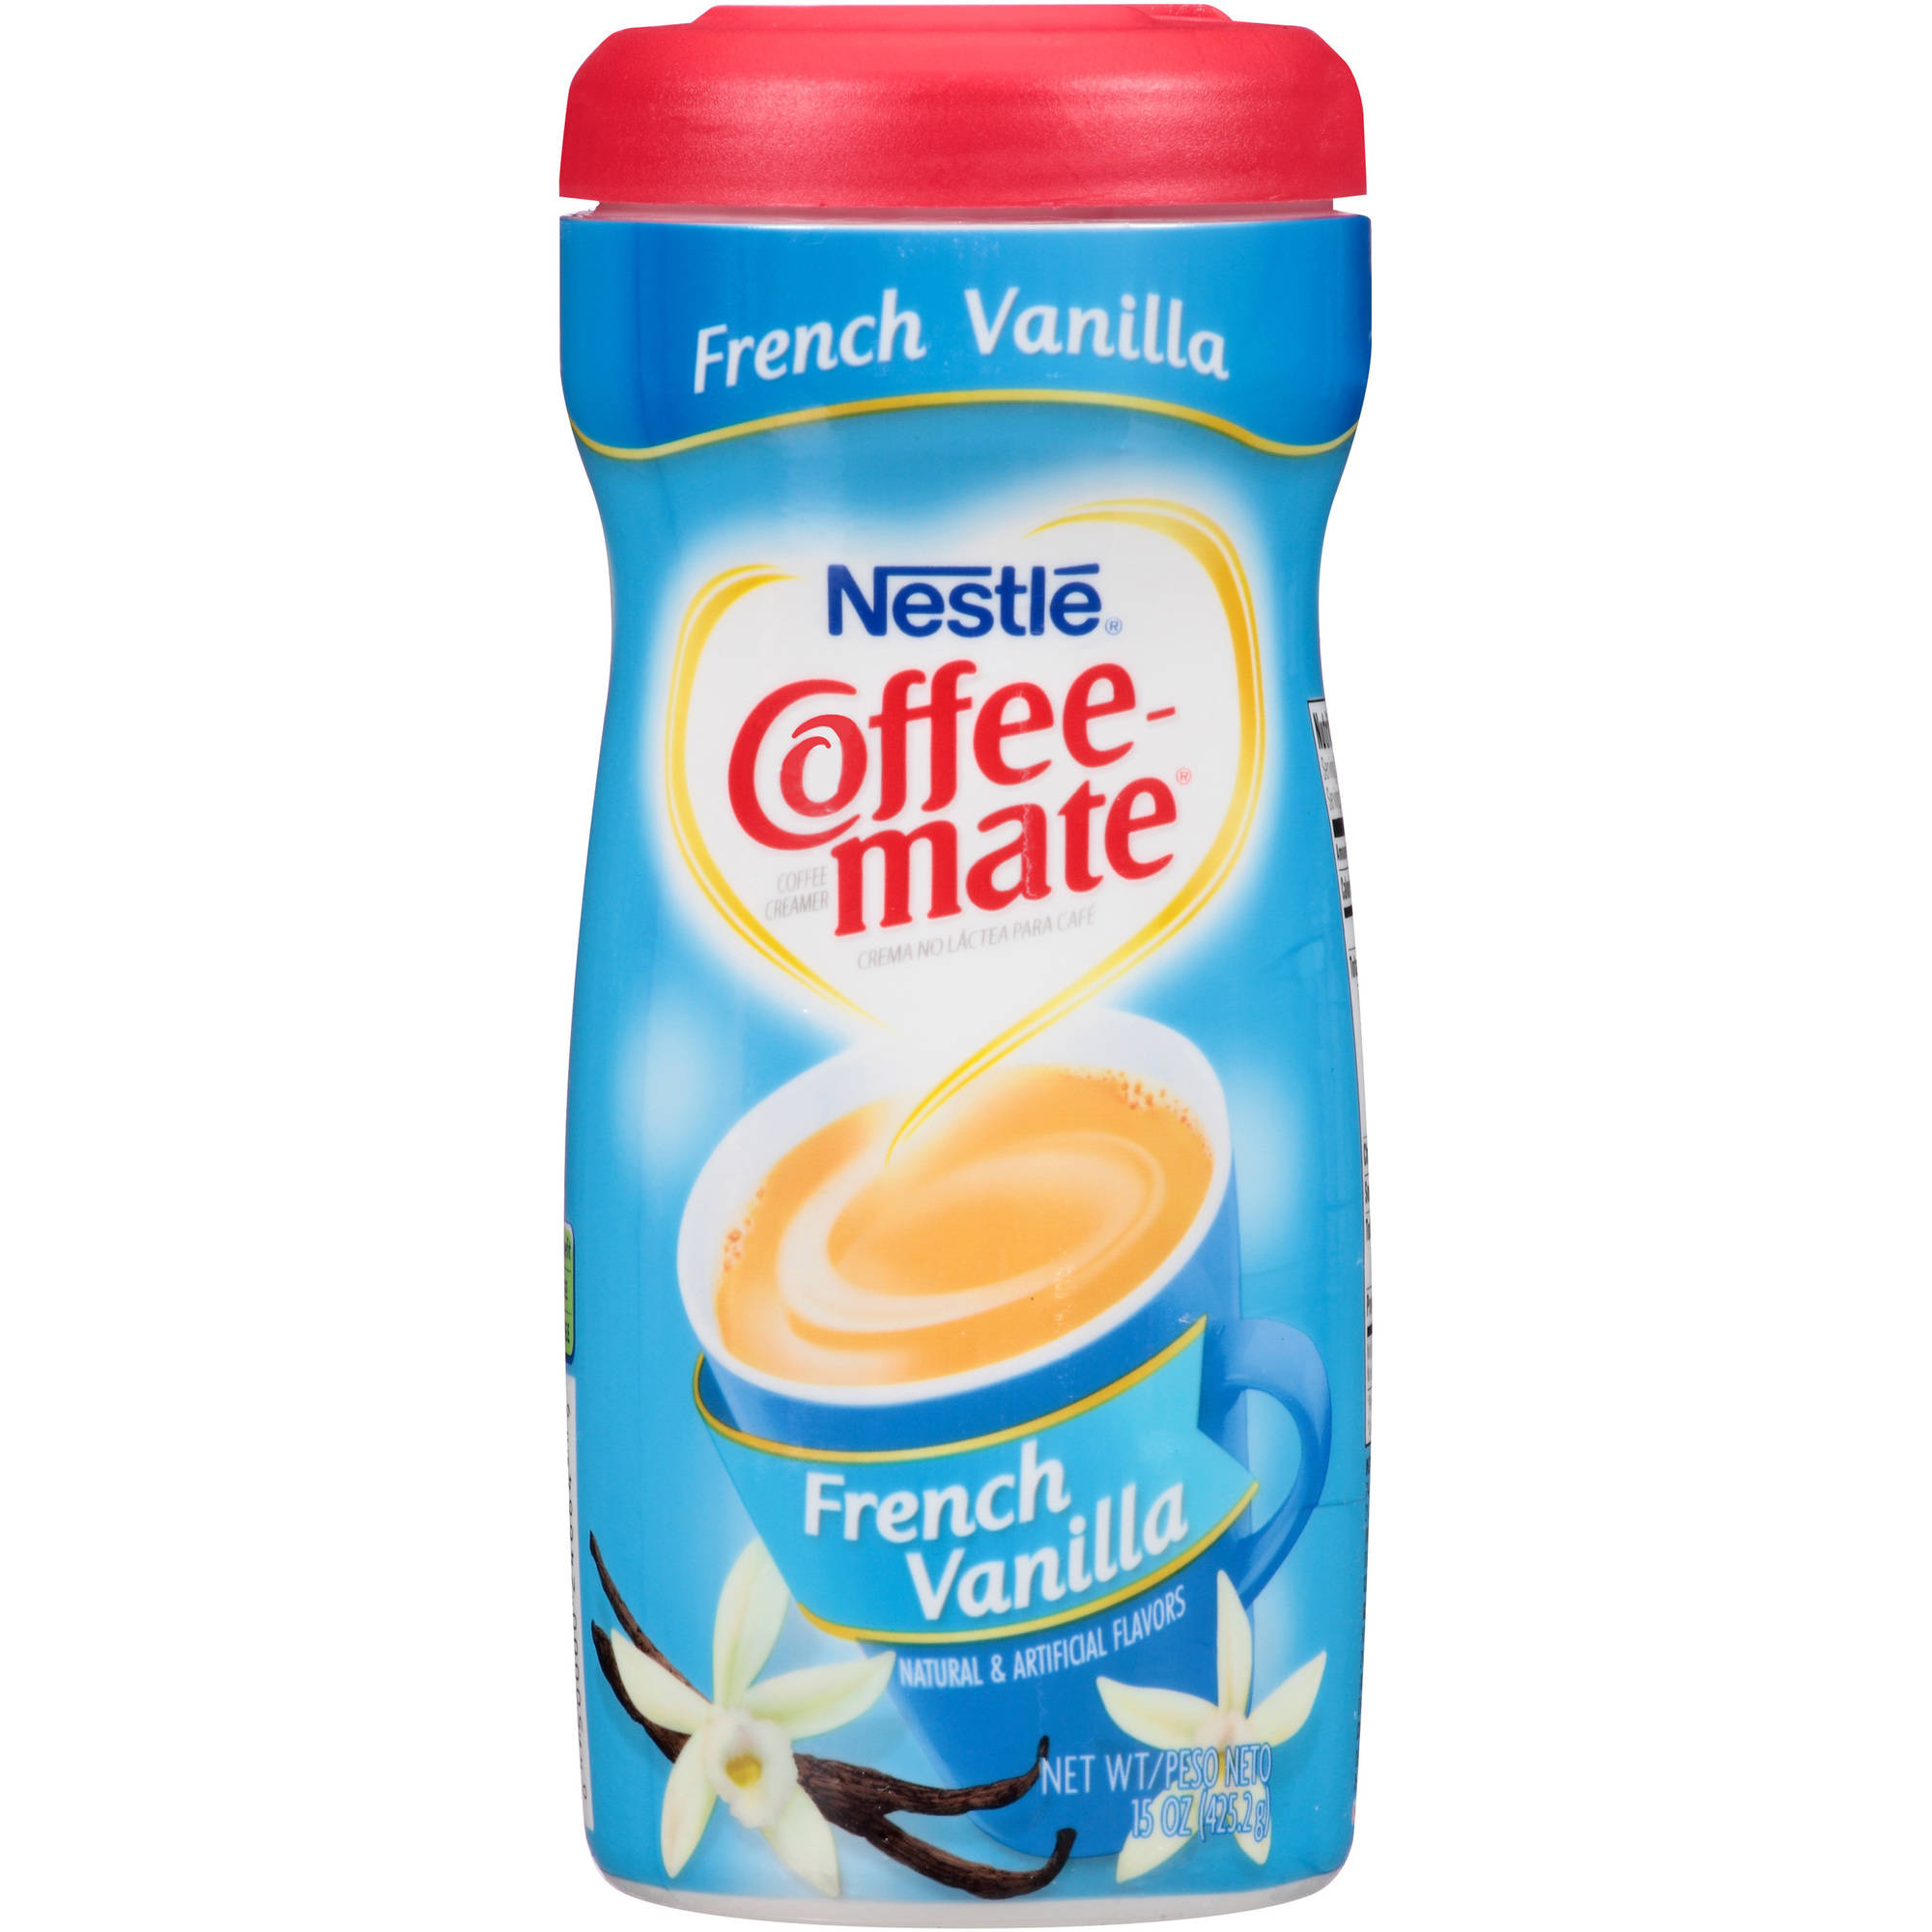 Nestl�� Coffee-mate French Vanilla Coffee Creamer 15 oz. Plastic Container